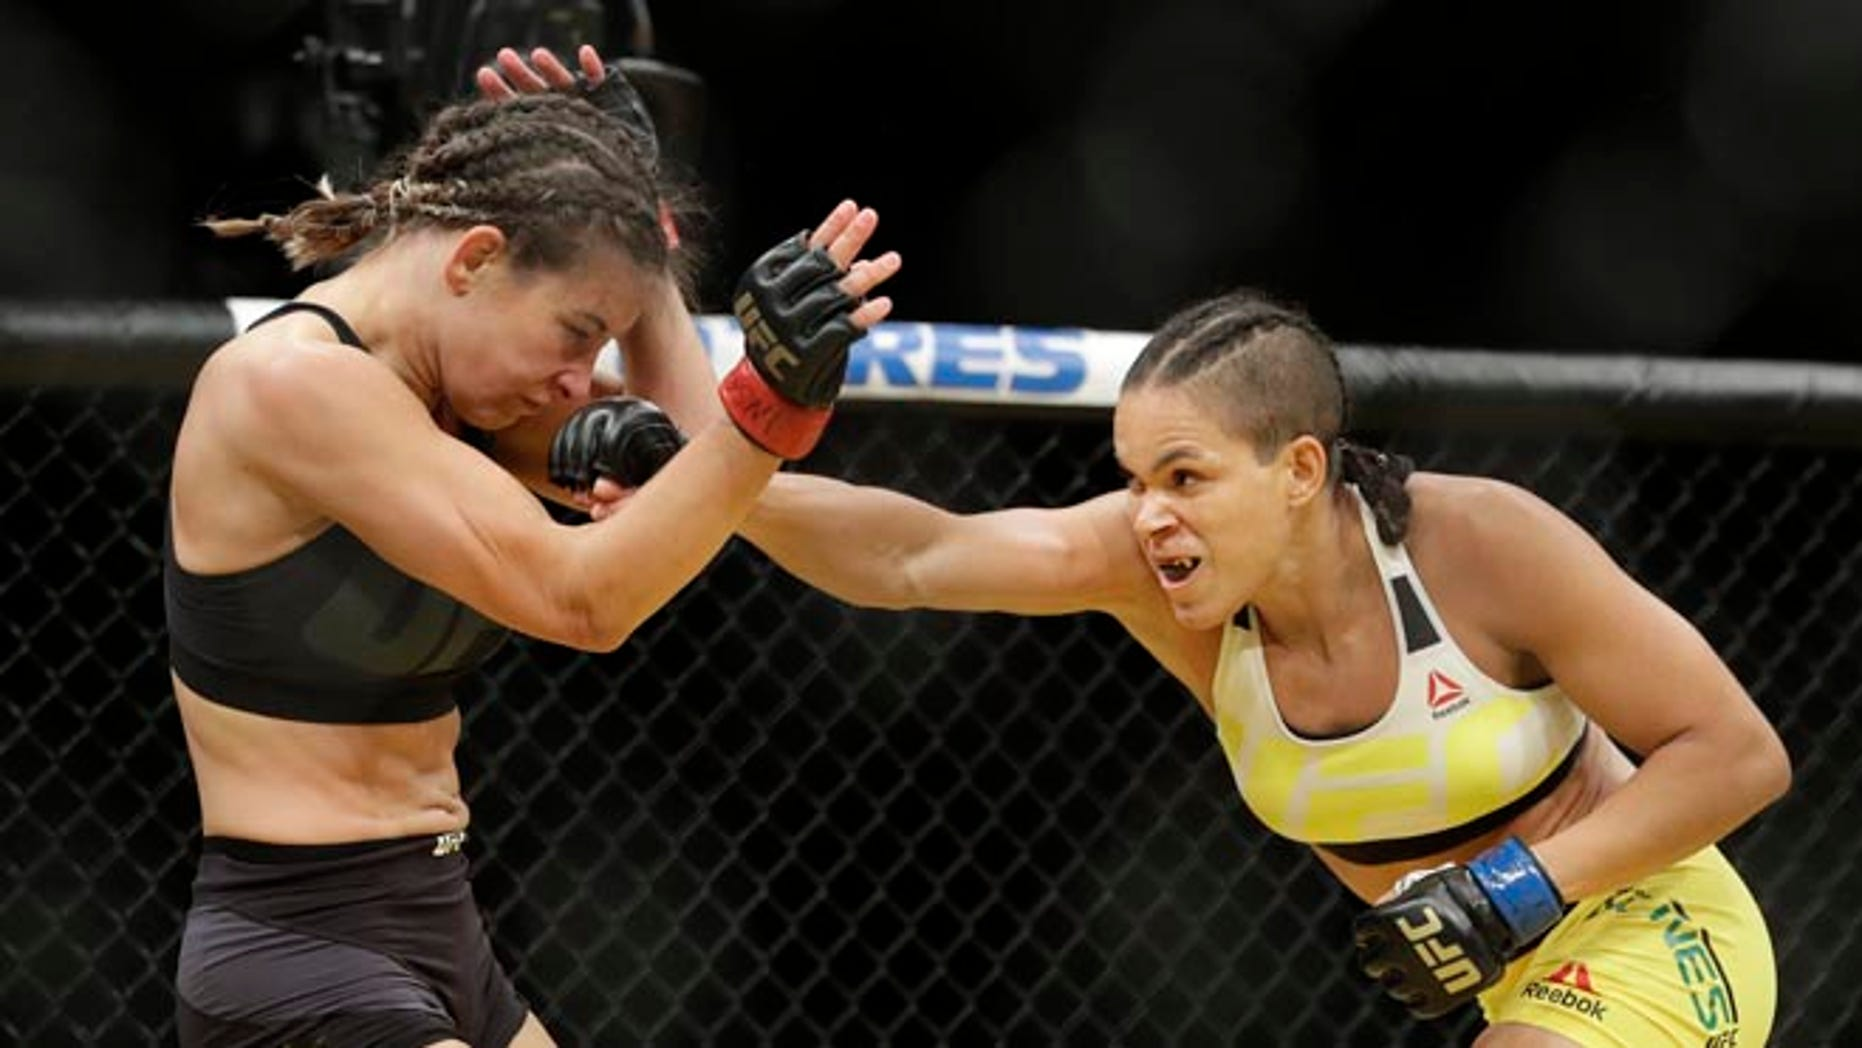 Amanda Nunes, right, hits Miesha Tate during their women's bantamweight championship mixed martial arts bout at UFC 200, Saturday, July 9, 2016, in Las Vegas. (AP Photo/John Locher)